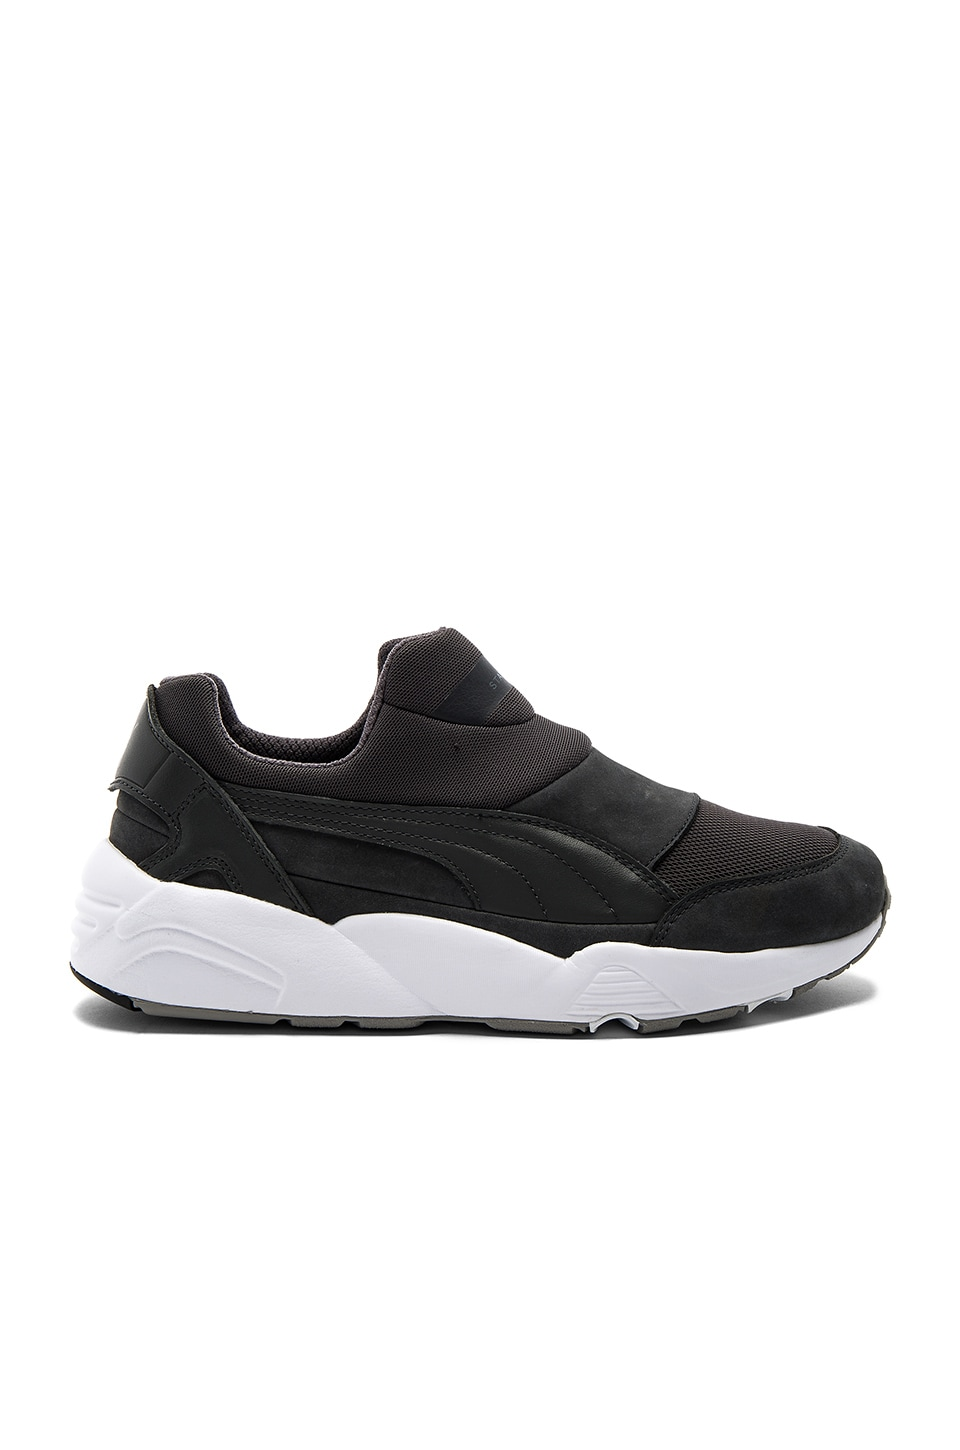 x STAMPD Trinomic Sock NM by Puma Select